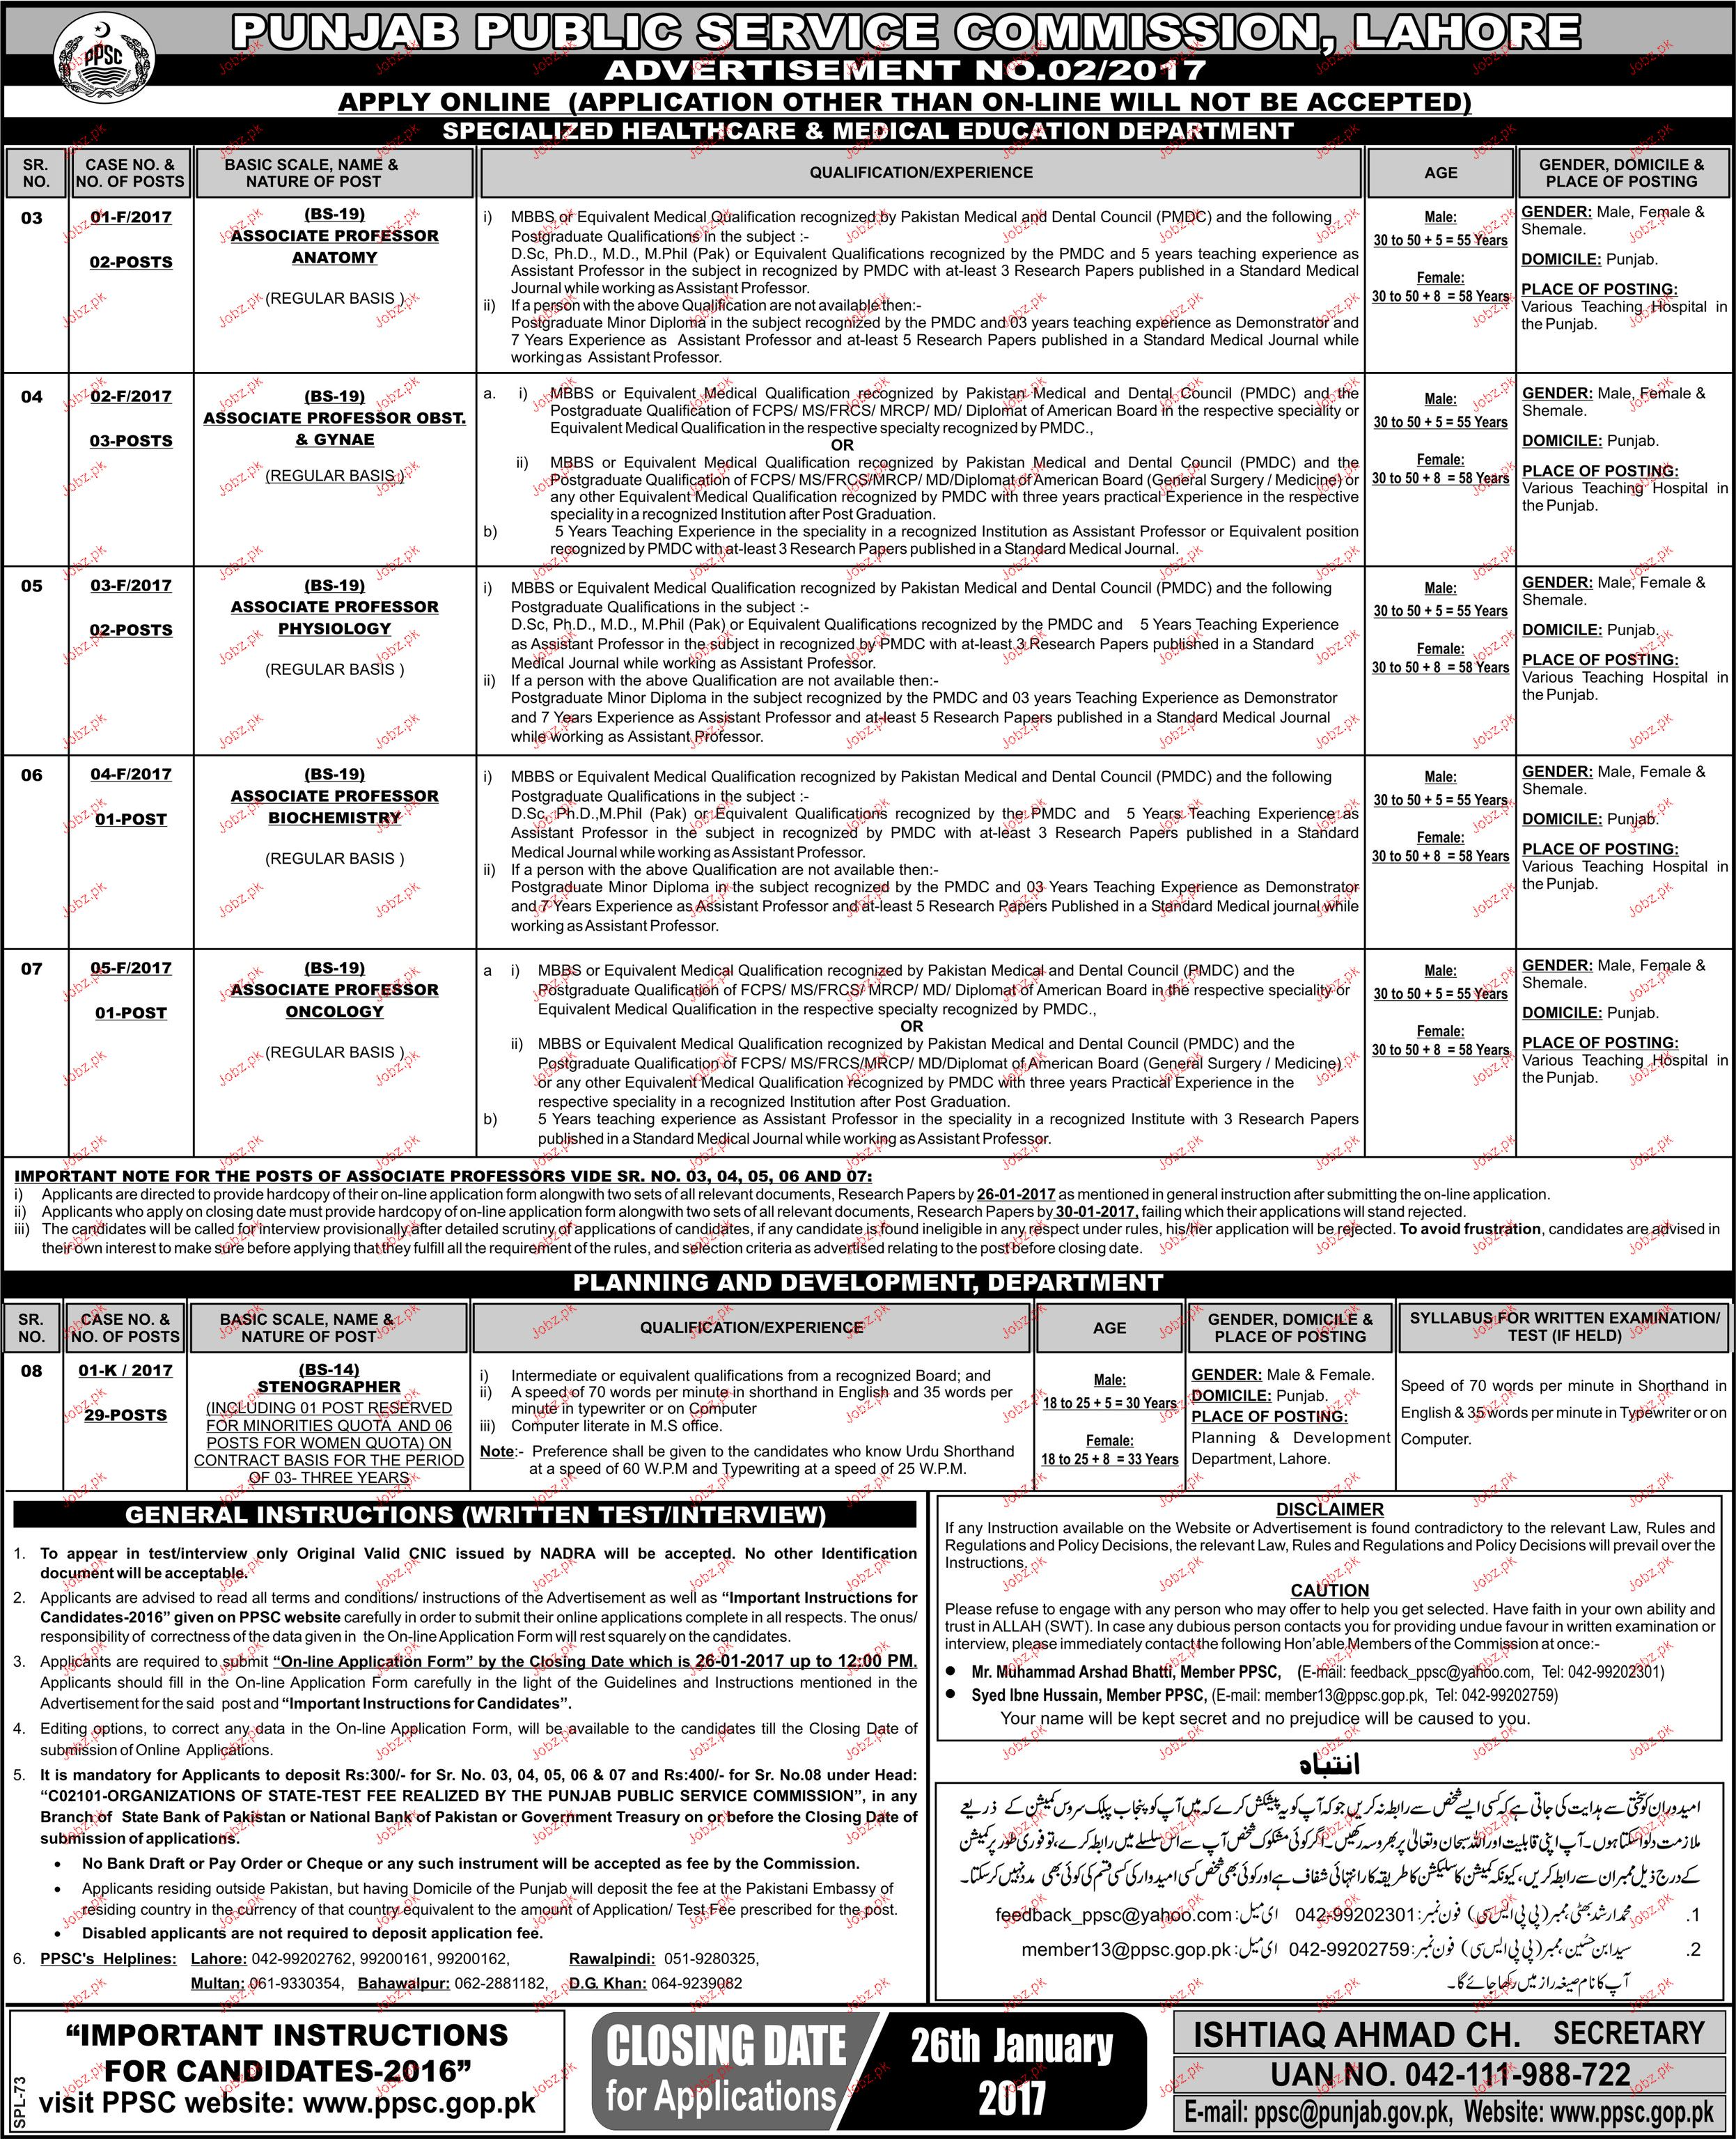 Associate Professors Job in Punjab Public Service Commission